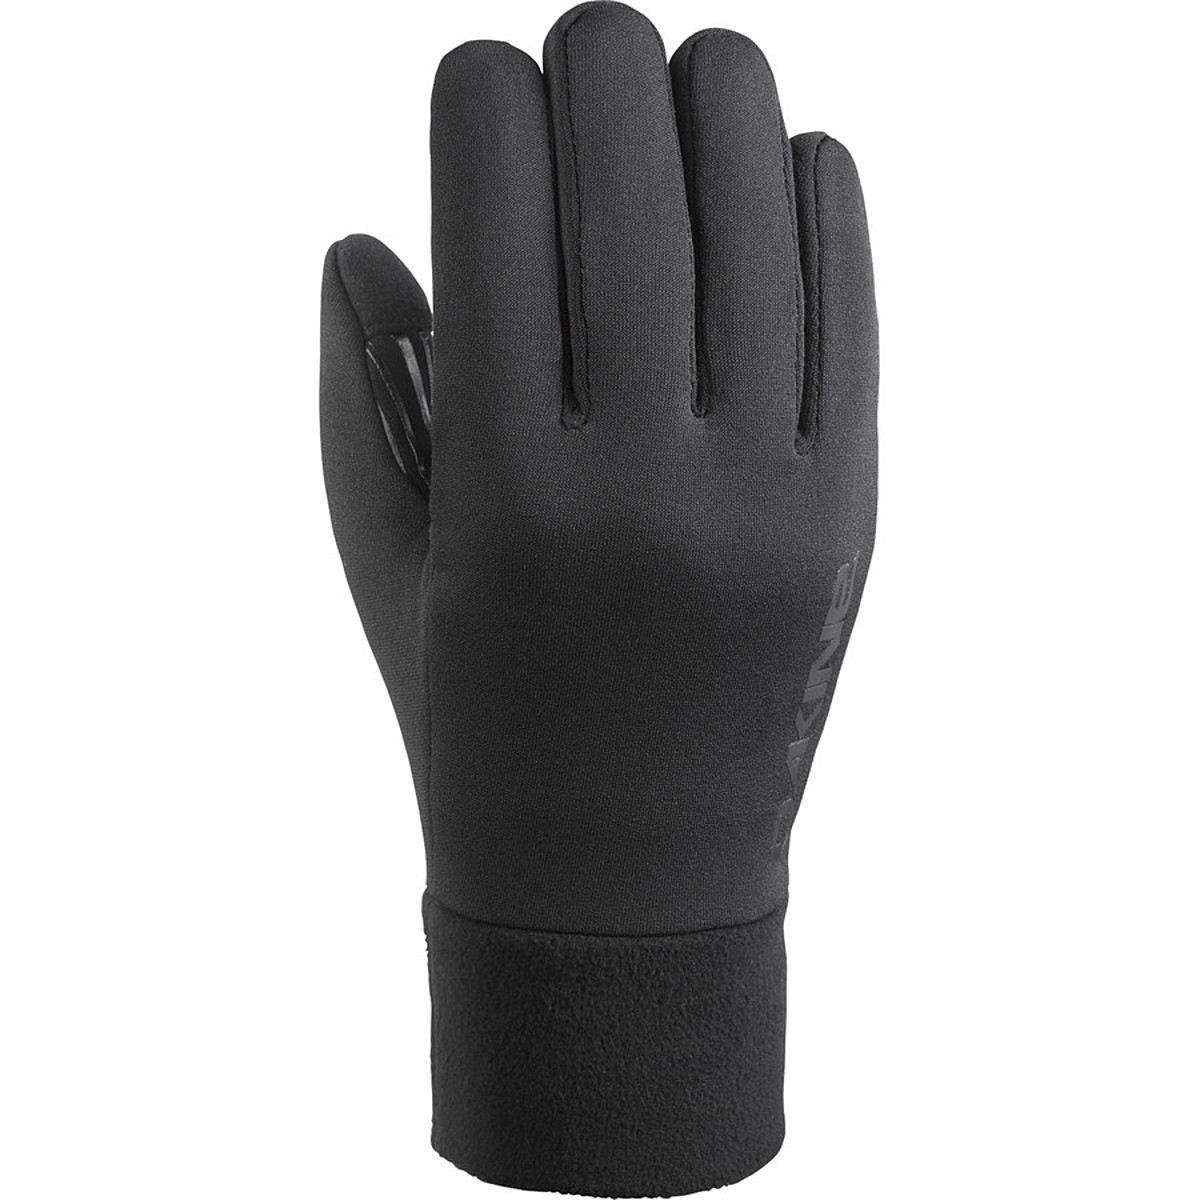 photo: DaKine Men's Storm Glove glove liner